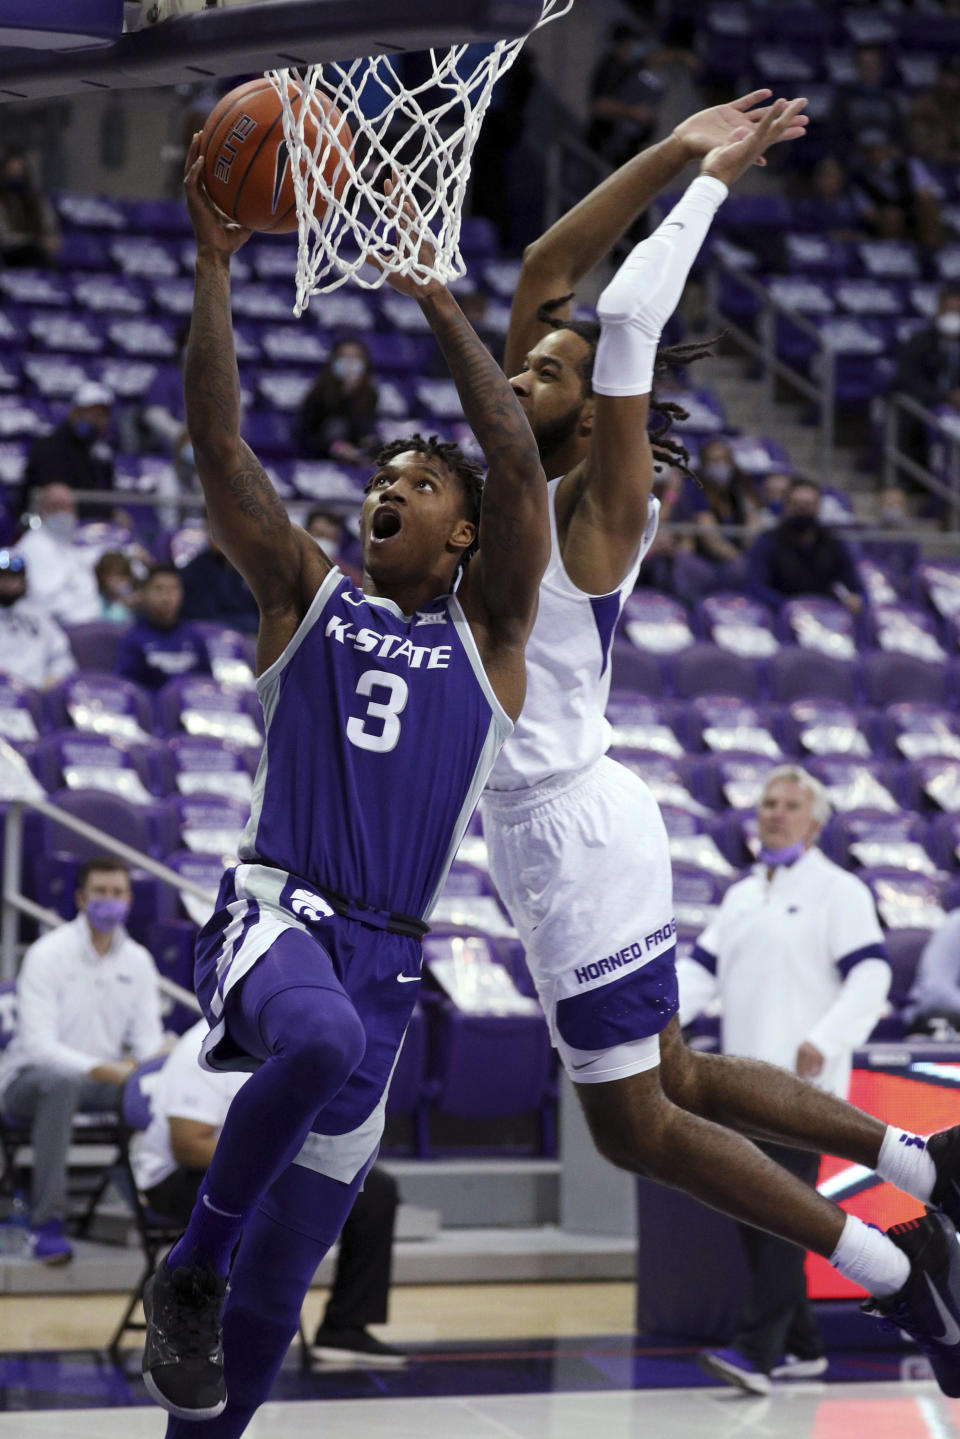 Kansas State guard DaJuan Gordon (3) goes up for a shot as TCU guard PJ Fuller (4) defends during the second half of an NCAA college basketball game Saturday, Feb. 20, 2021, in Fort Worth, Texas. (AP Photo/Richard W. Rodriguez)